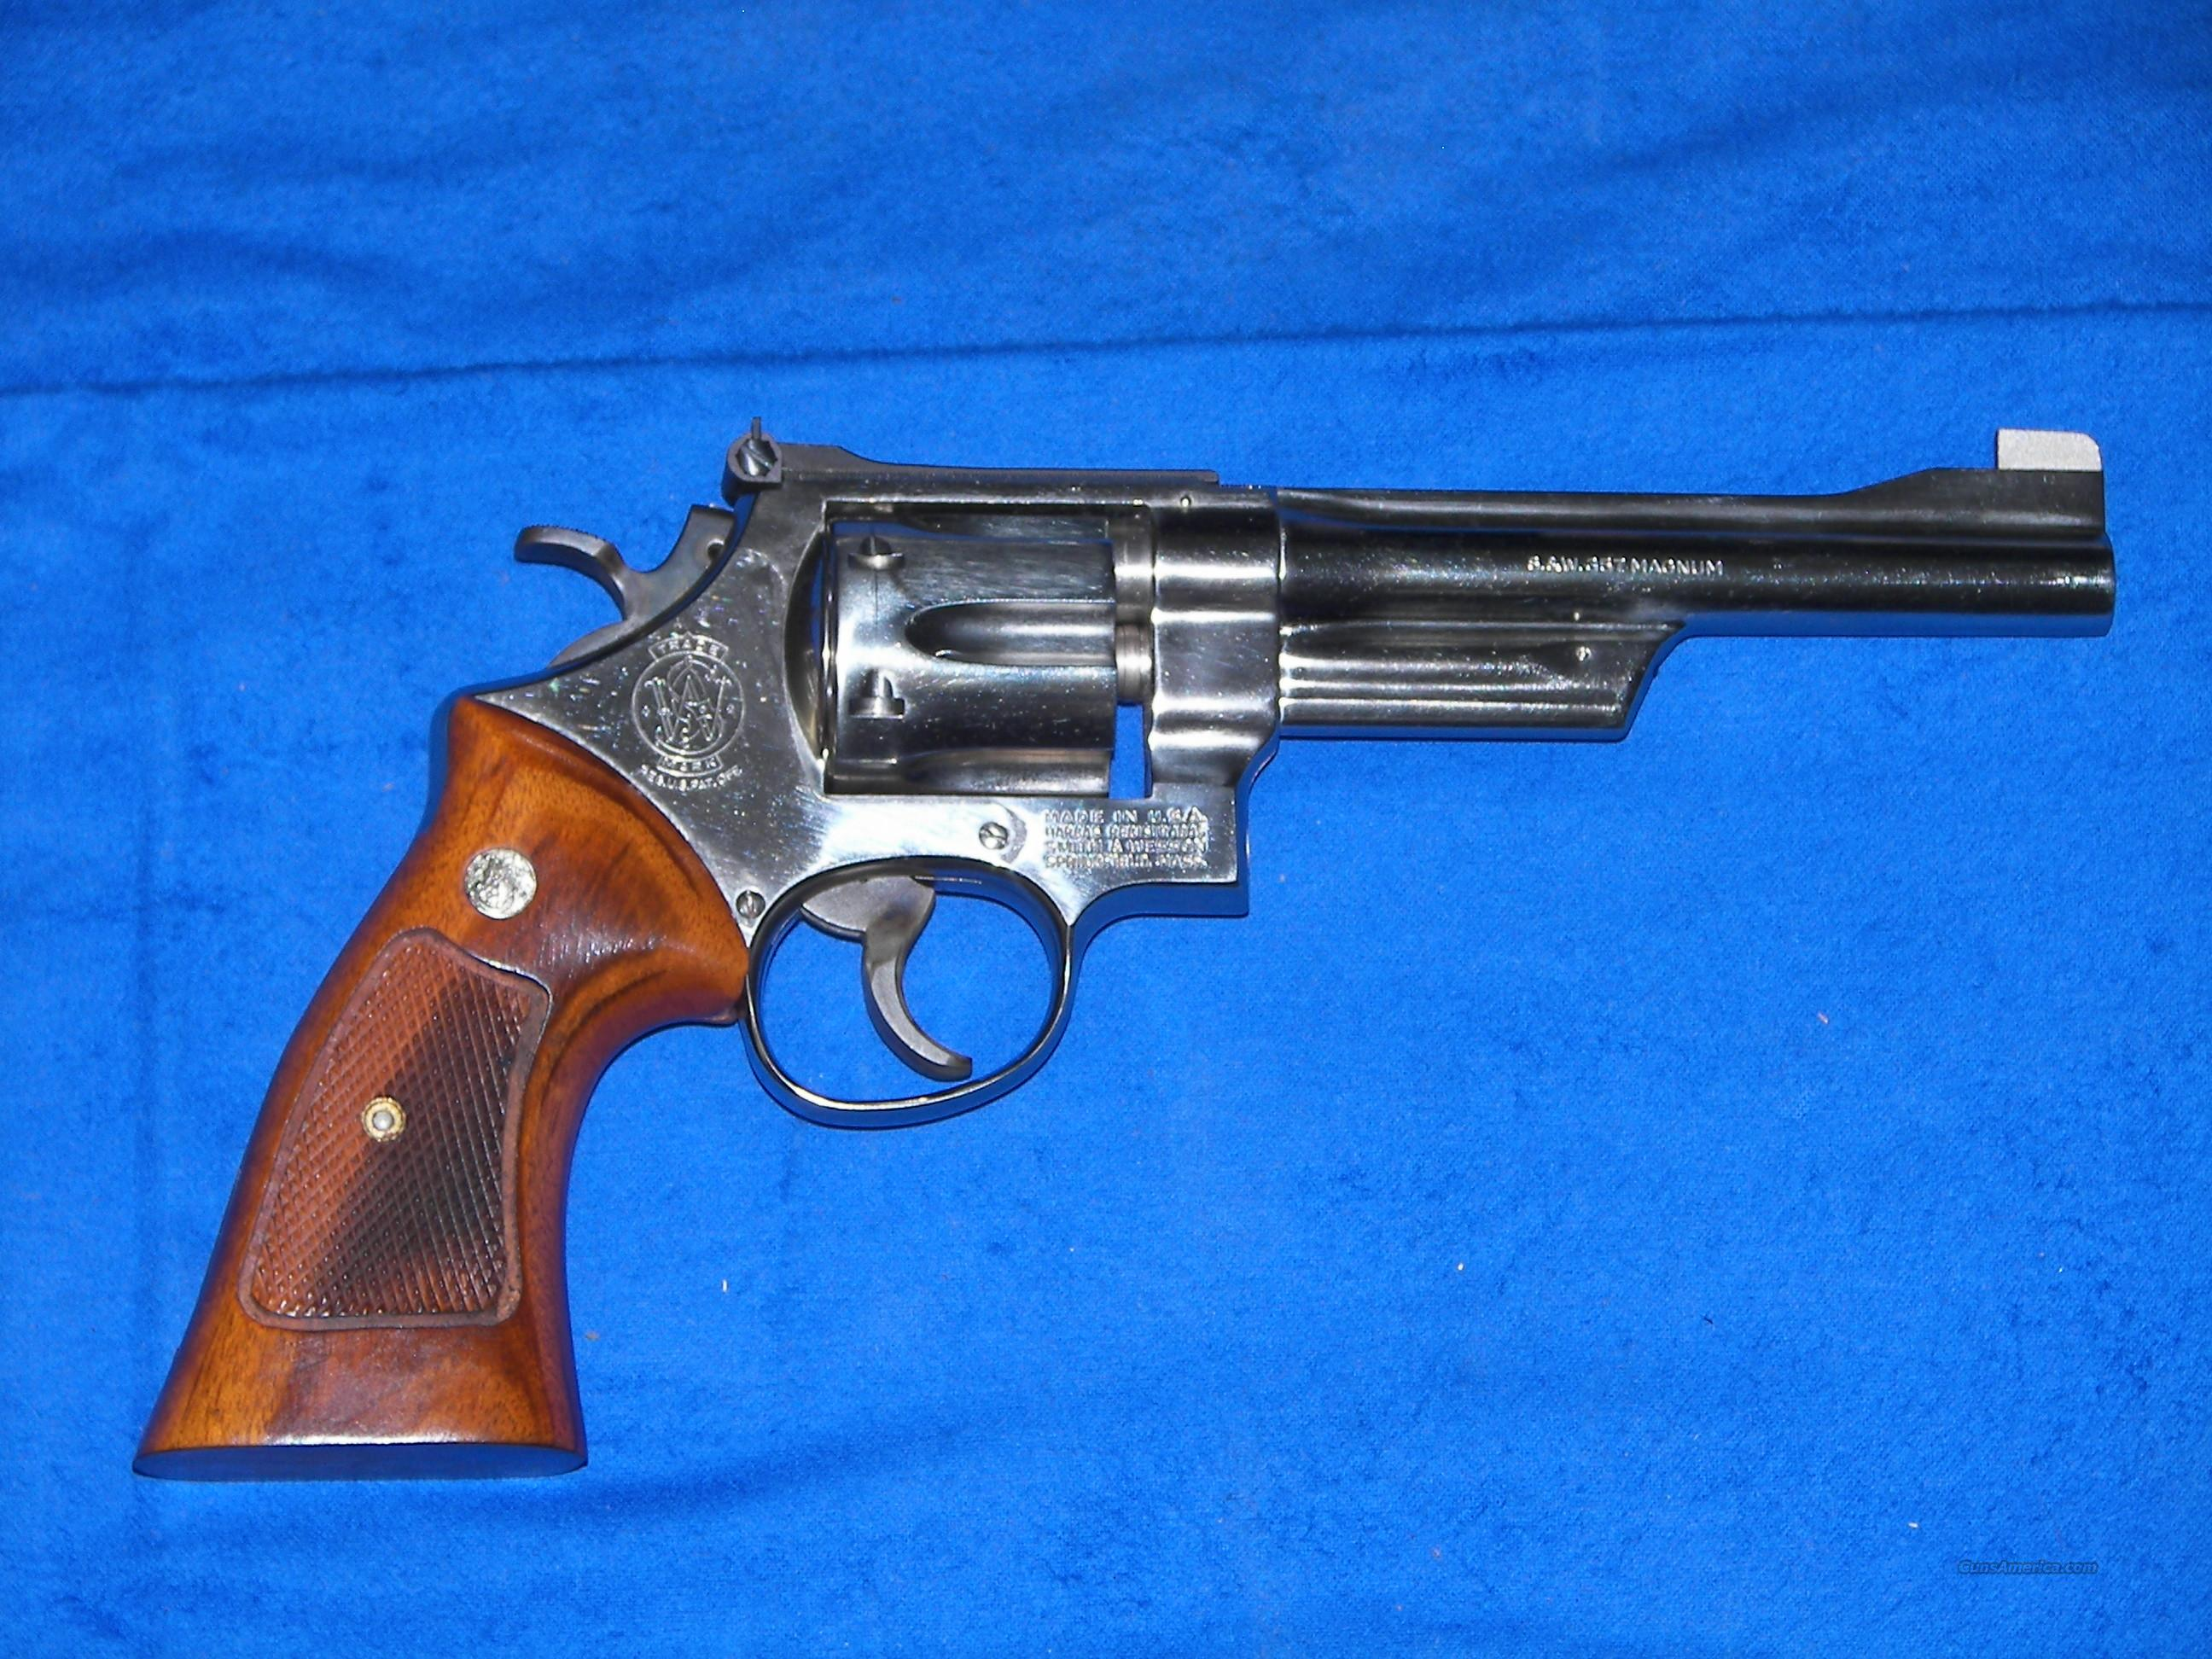 SMITH & WESSON 27-2  NICKEL  .357 MAGNUM  Guns > Pistols > Smith & Wesson Revolvers > Full Frame Revolver